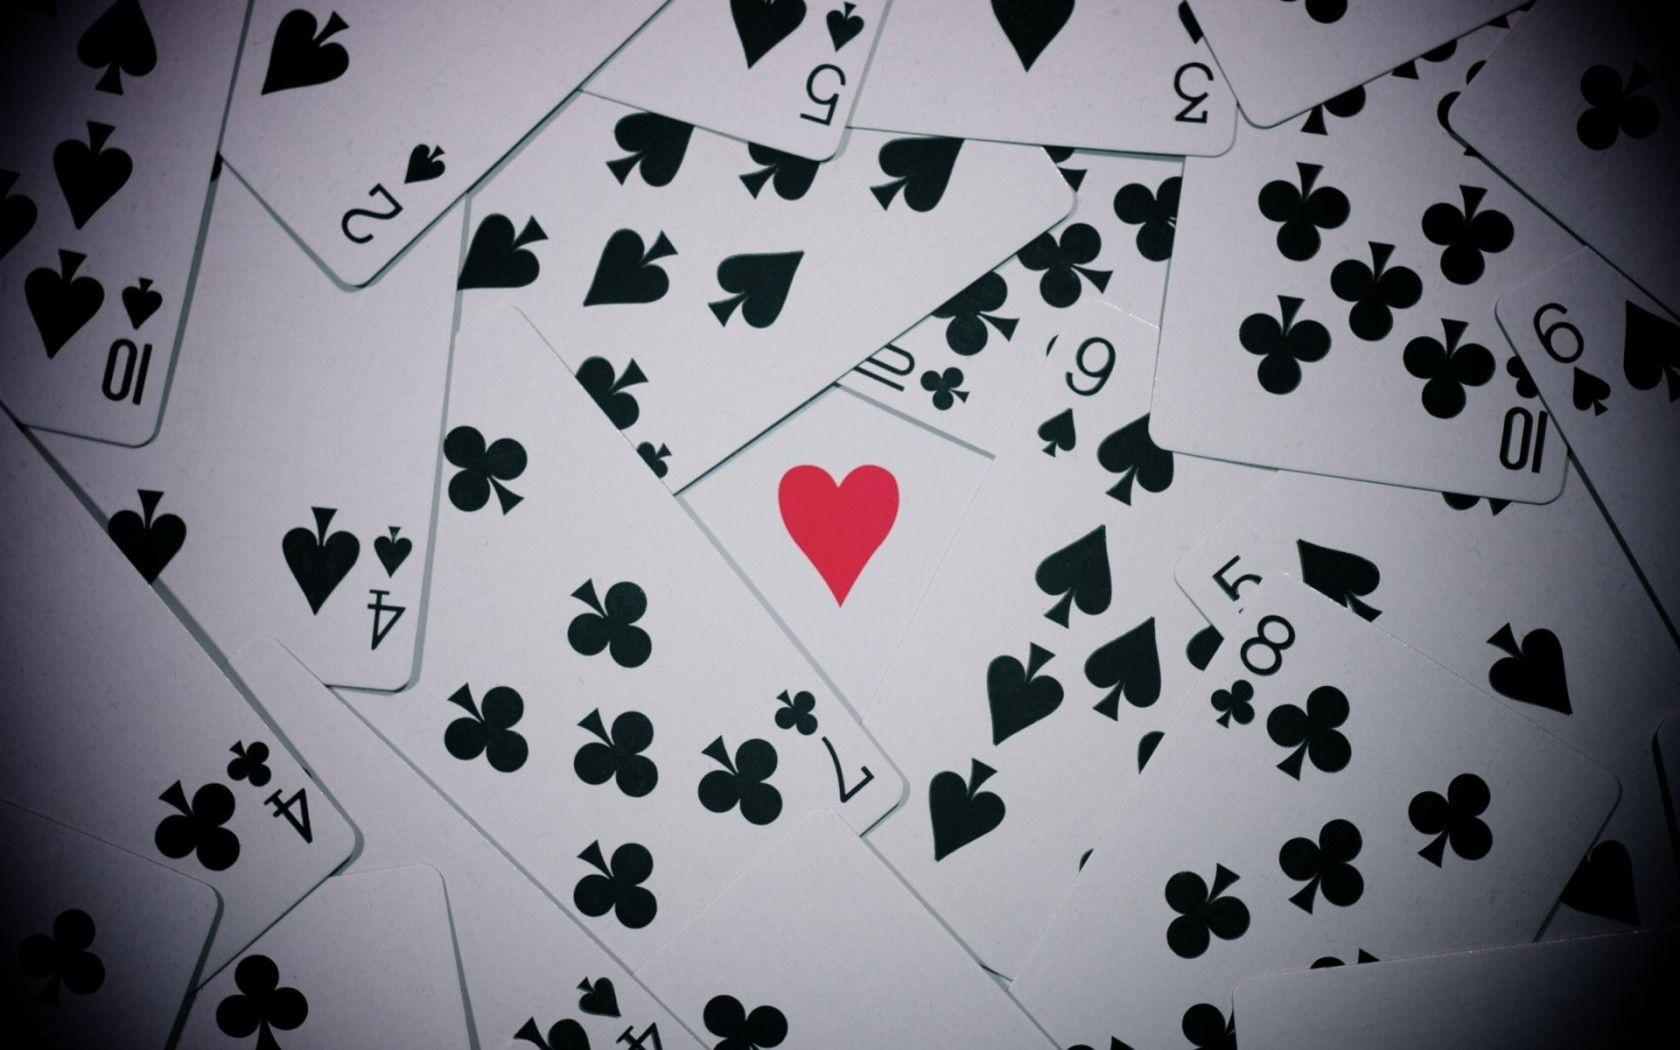 Free Recommendation On Casino Online